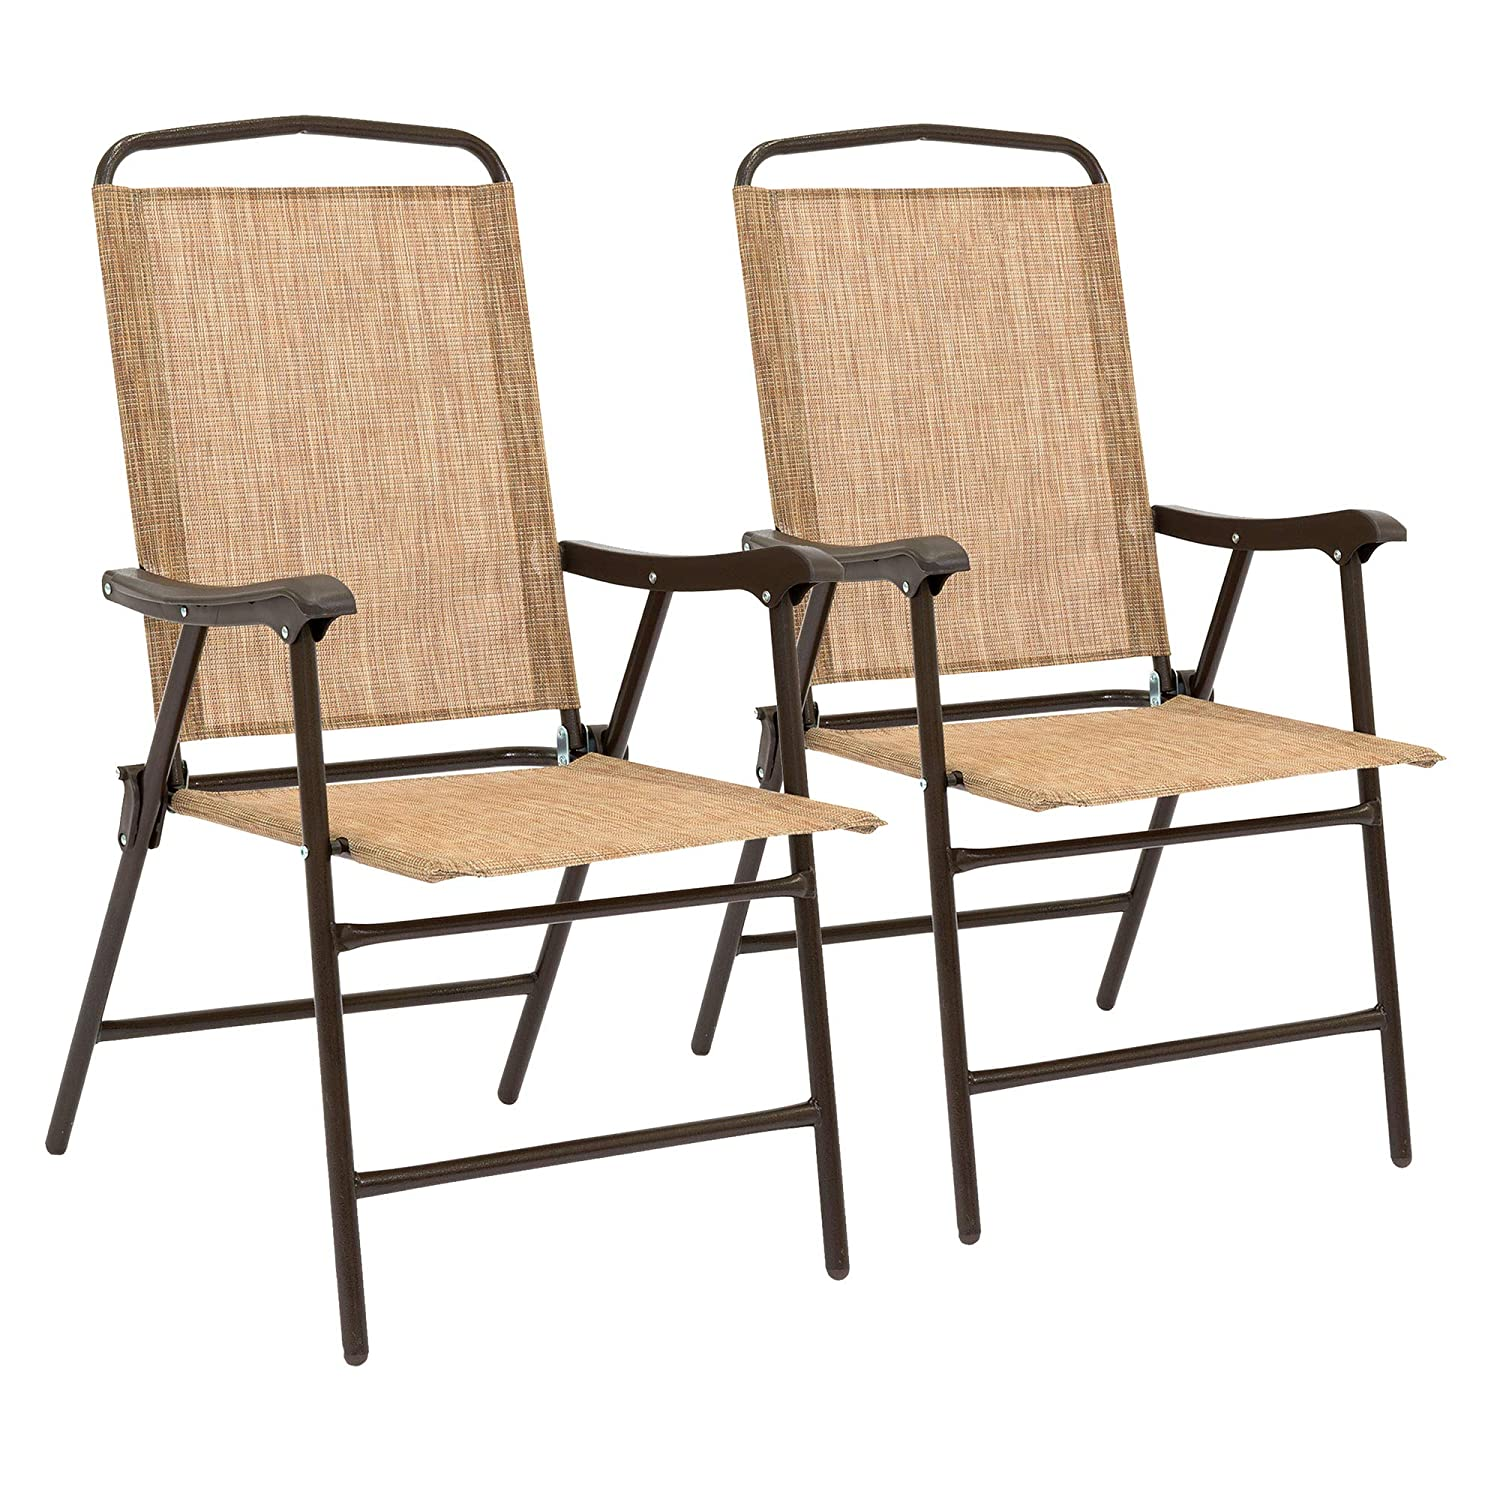 Awe Inspiring Best Choice Products Set Of 2 Outdoor Folding Sling Back Chairs For Patio Deck W Weather Resistant Fabric Metal Frame Inzonedesignstudio Interior Chair Design Inzonedesignstudiocom